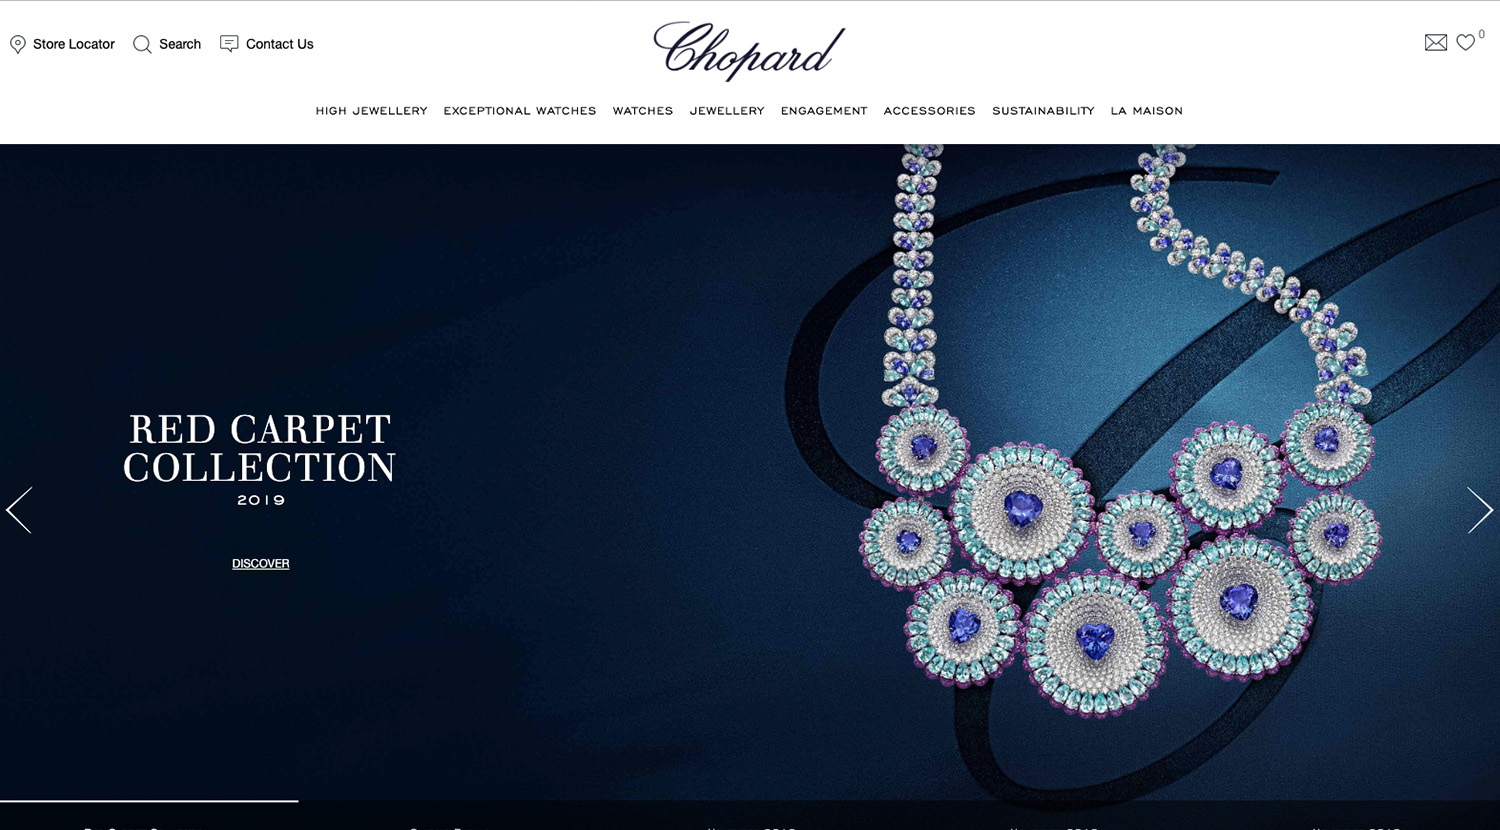 chopard_jewellery_website.jpg